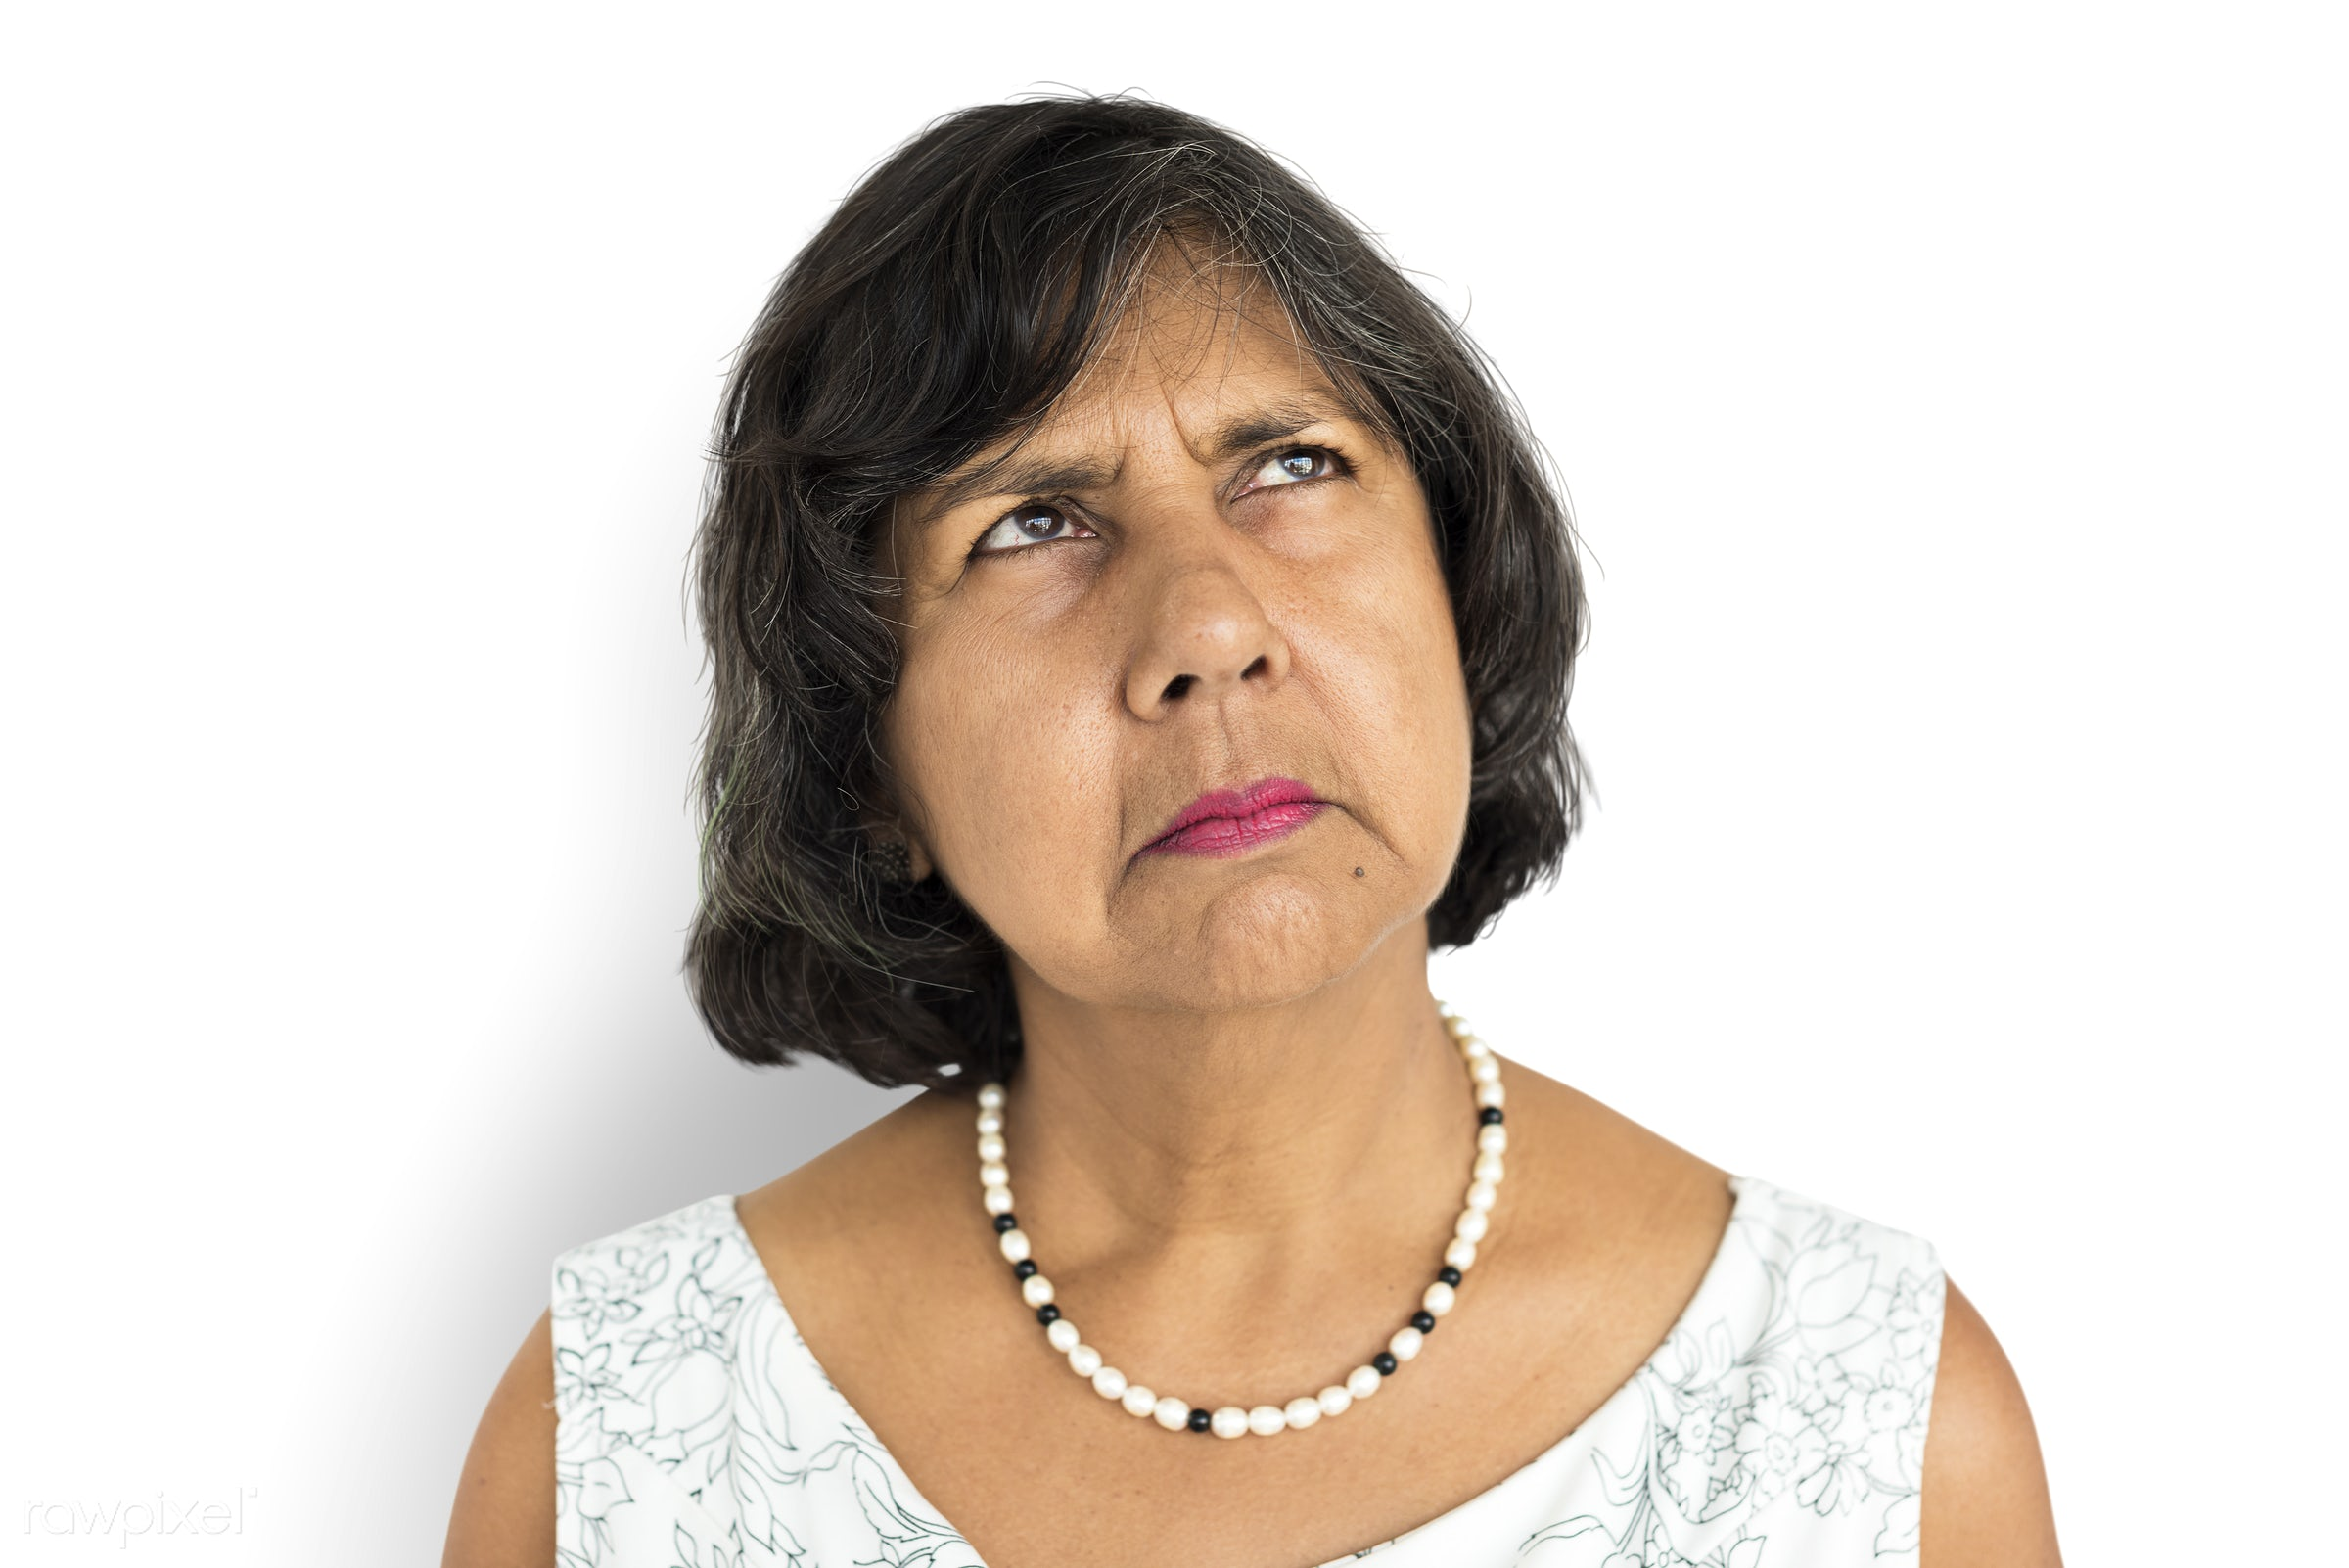 expression, studio, old, person, isolated on white, sad, heartbroken, grumpy, people, caucasian, girl, sadden, woman,...